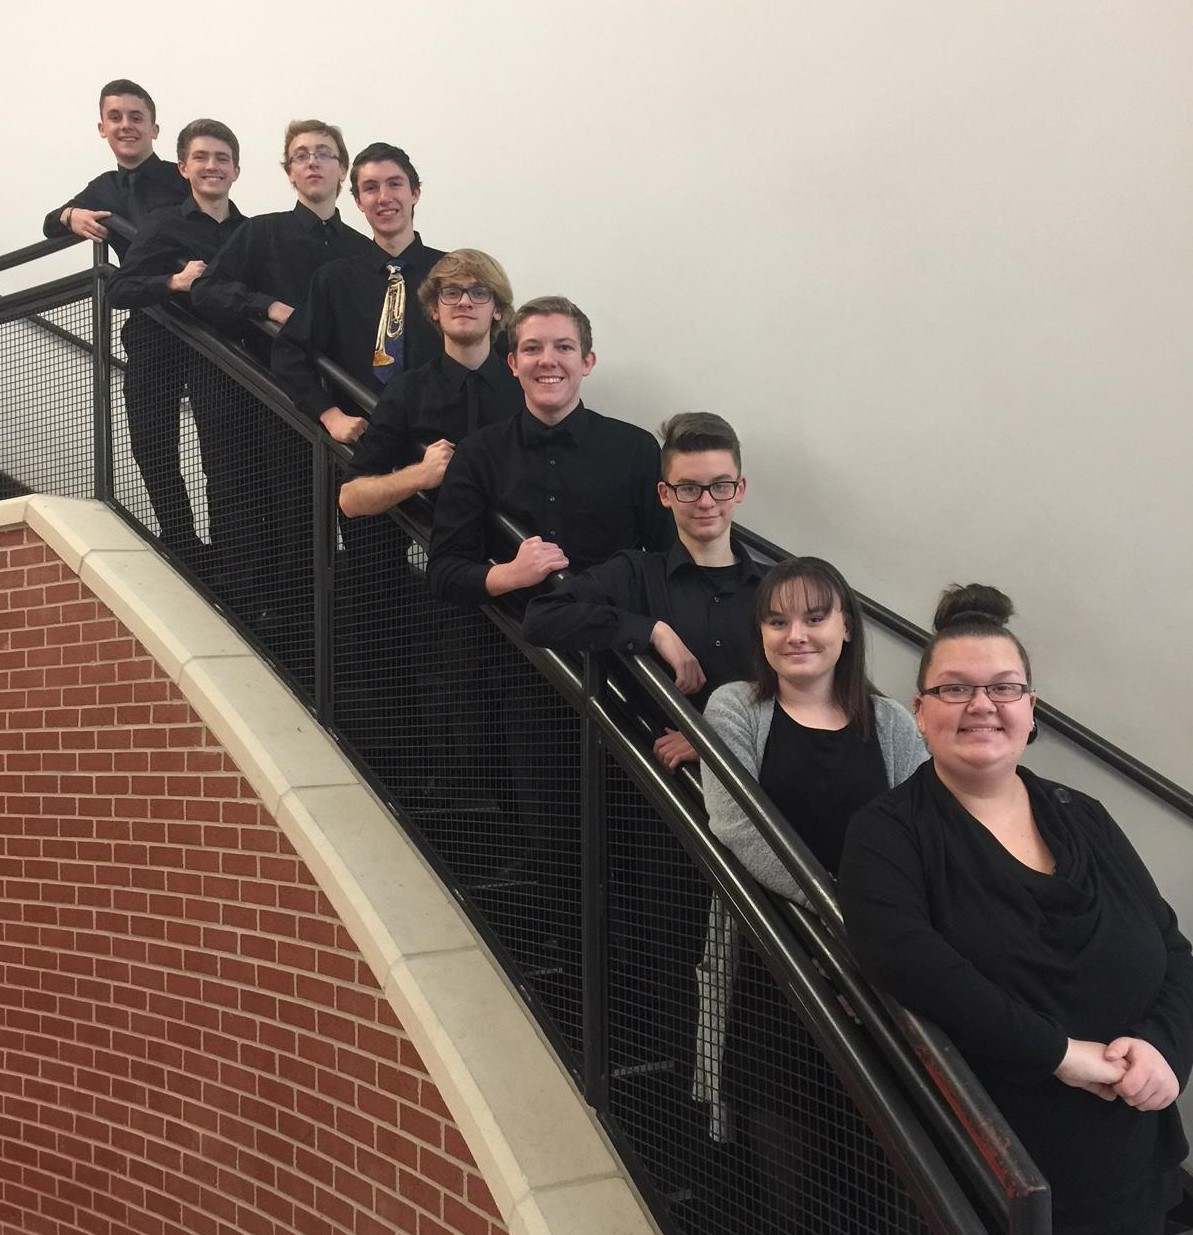 All District Symphonic Band members on stairsteps